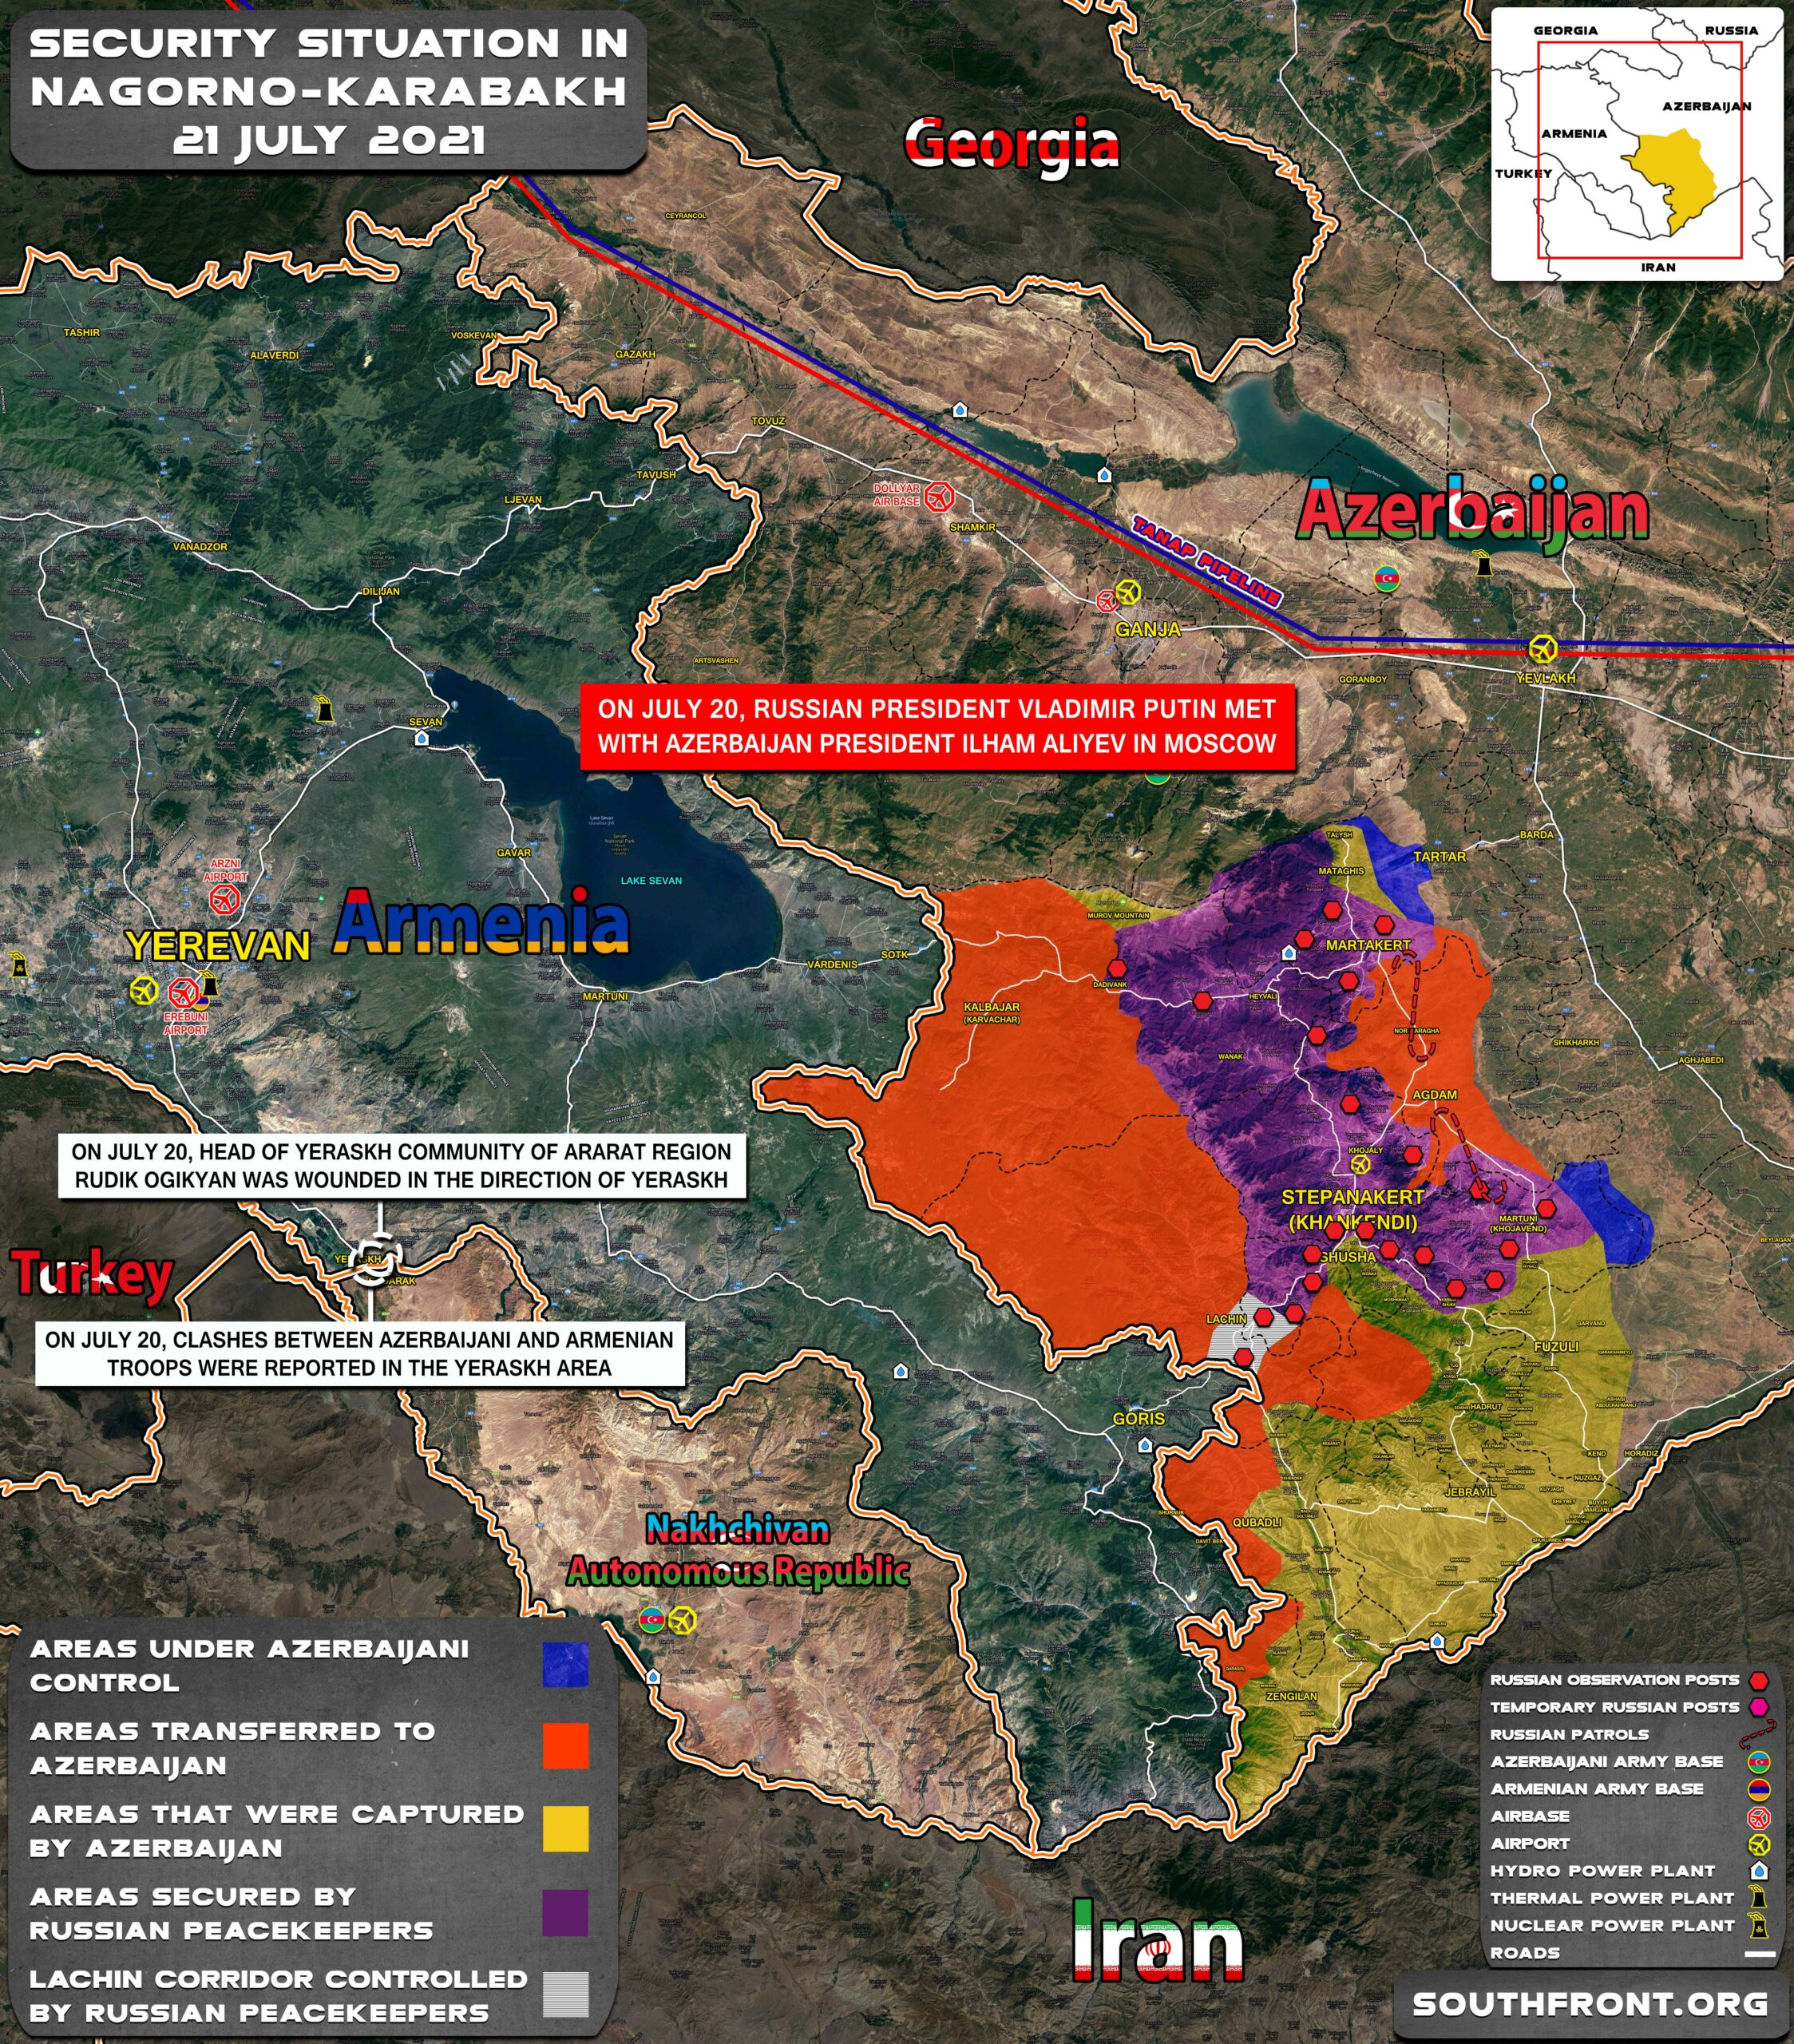 Military Situation In Nagorno-Karabakh On July 21, 2021 (Map Update)